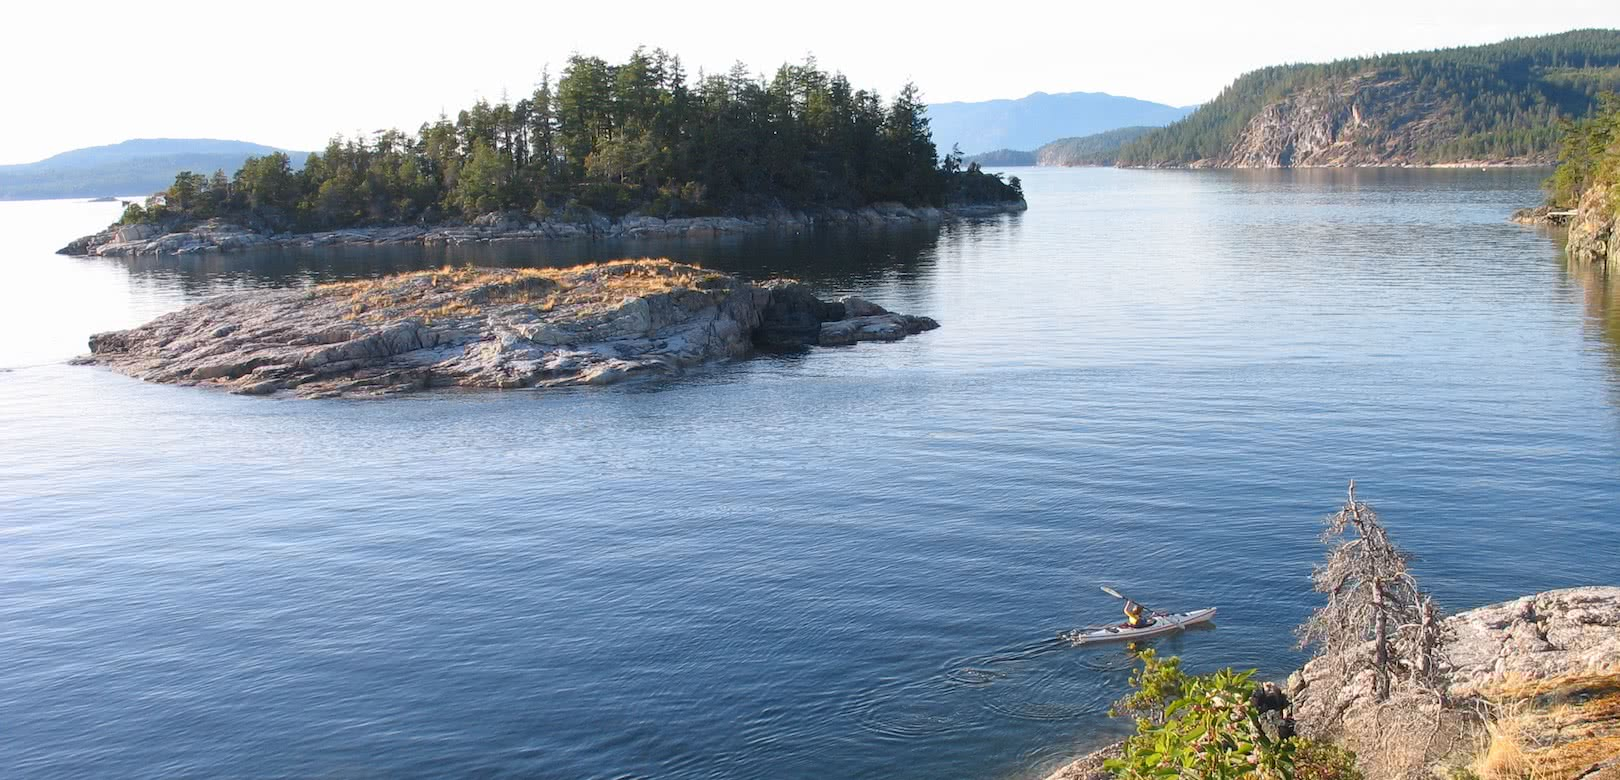 A young kayaker paddles along the shore on one of our Copeland Islands day tours